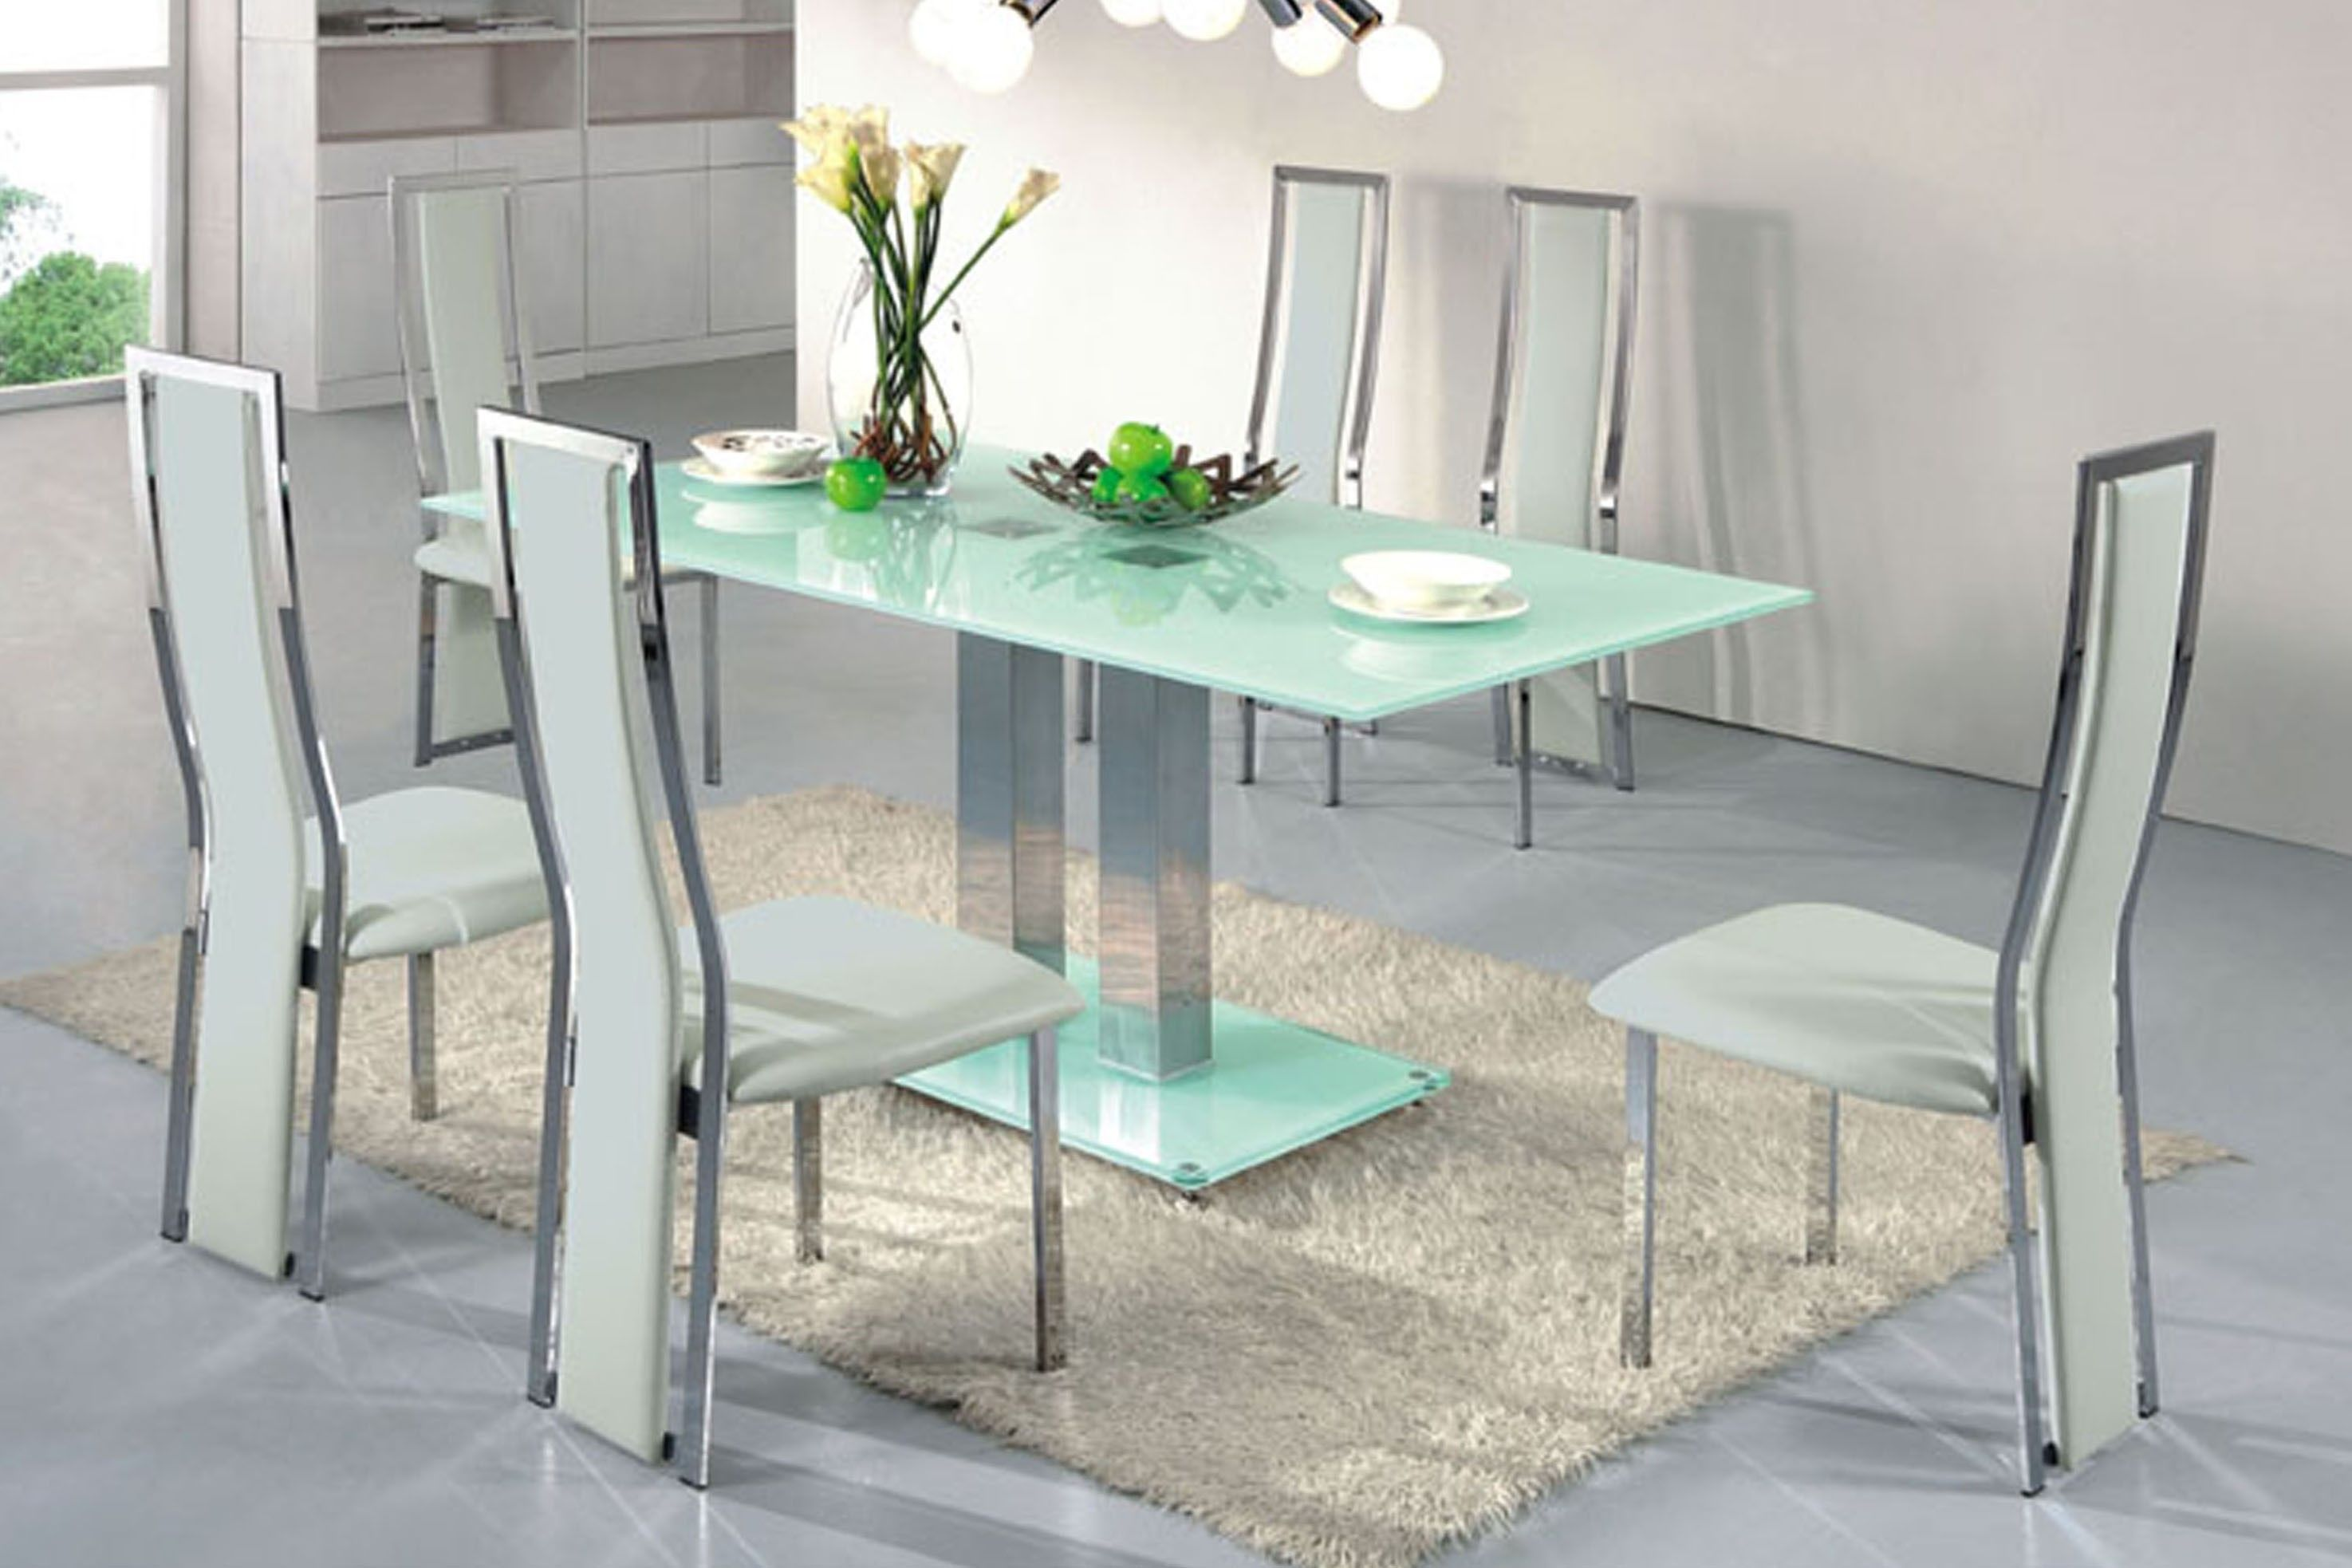 Modern Espresso Dining Room Table  Go To Chinesefurnitureshop Custom Espresso Dining Room Table Sets Design Inspiration